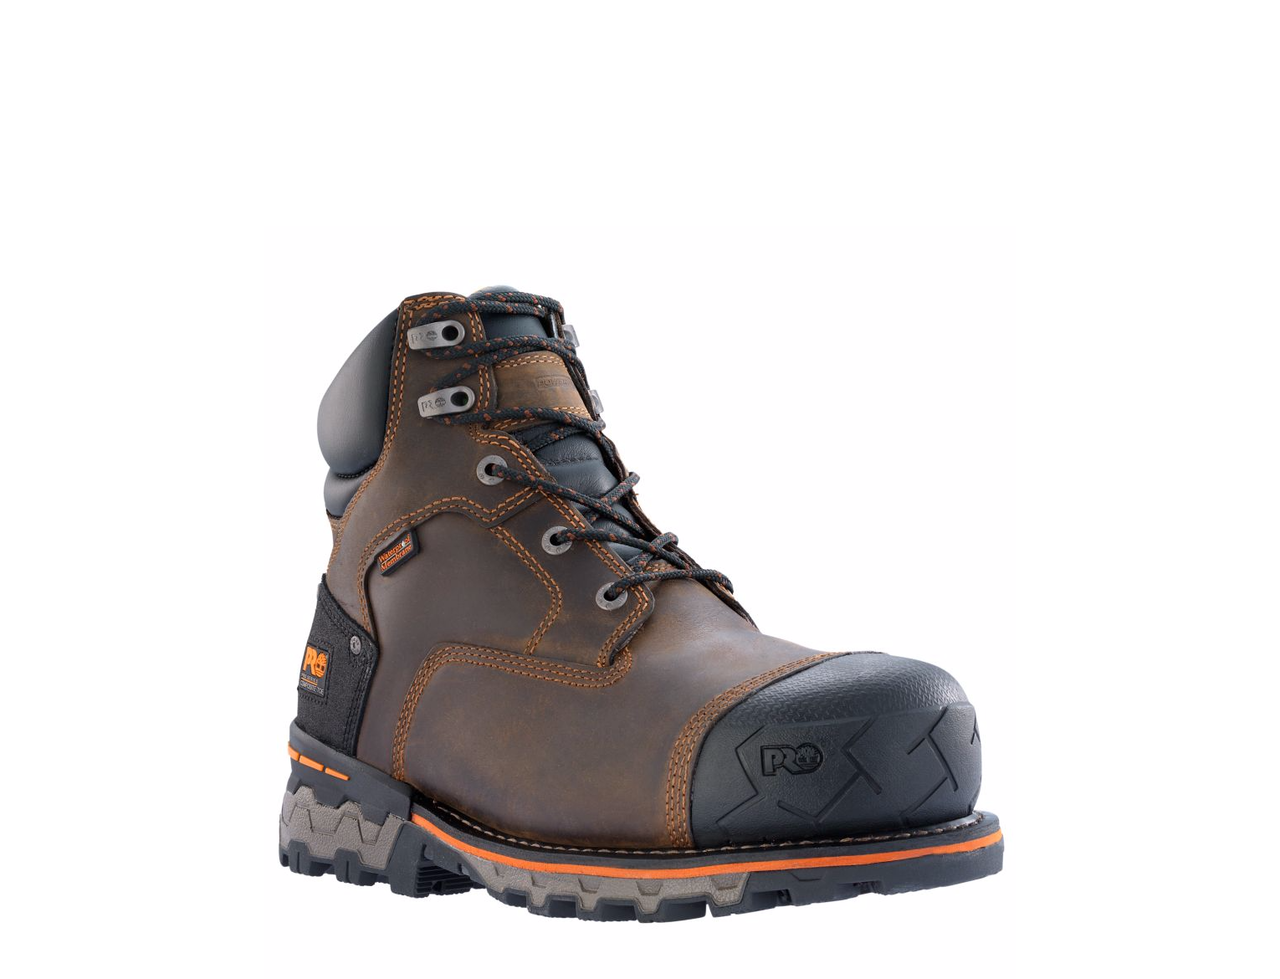 Timberland Steel Toe Shoes Price